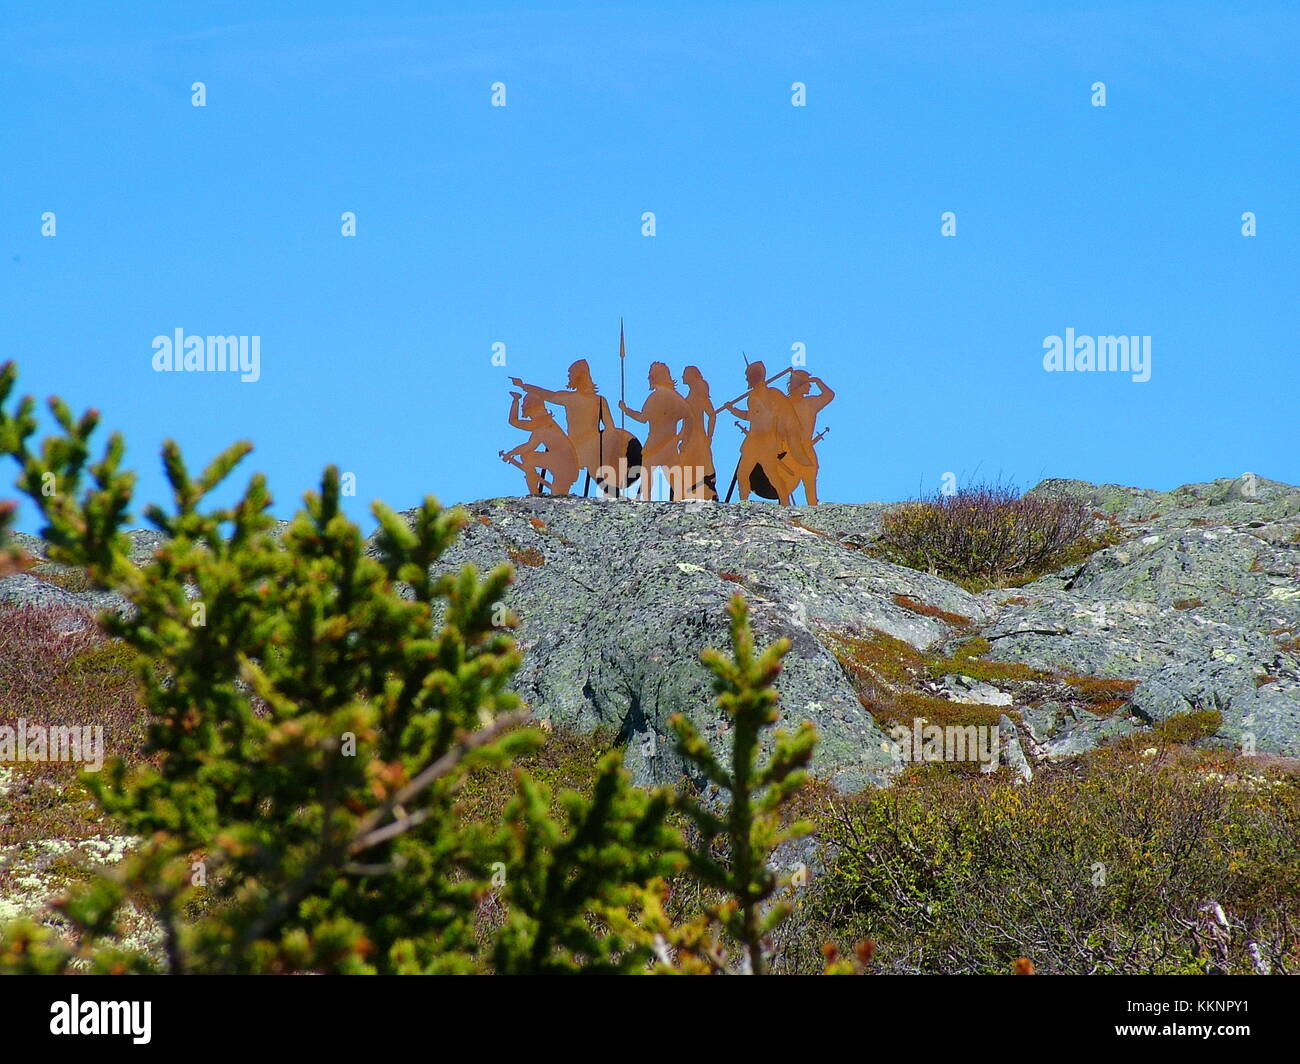 Newfoundland, CA, June 24, 2011: This iron sculpture at L'Anse aux Meadows evokes the arrival of the Norse 1000 - Stock Image